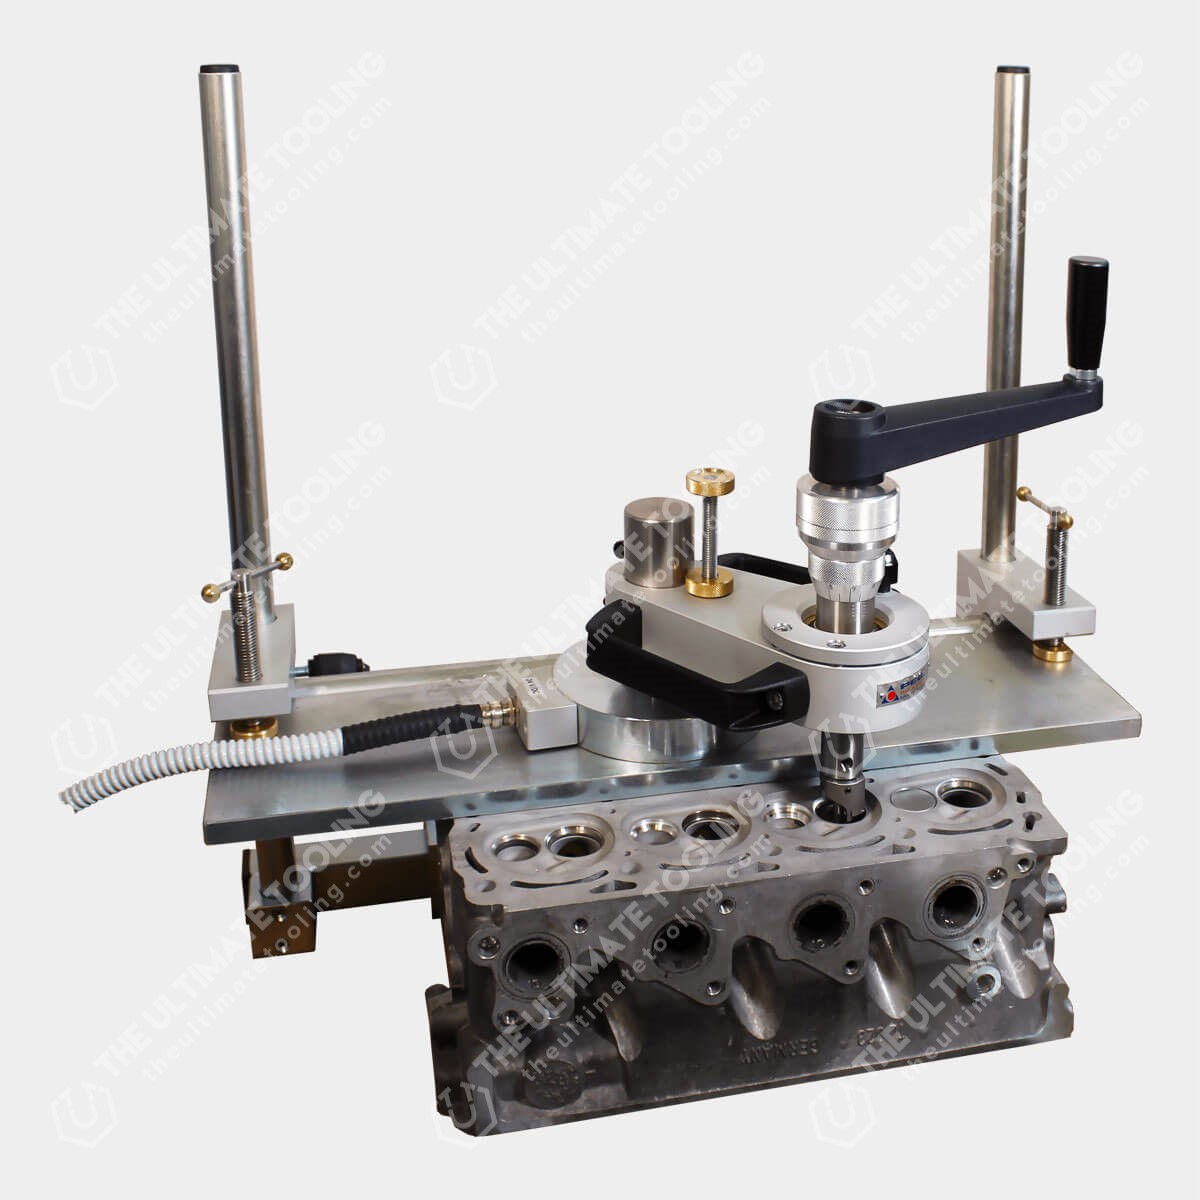 FM1 Manual Valve Seat Machine